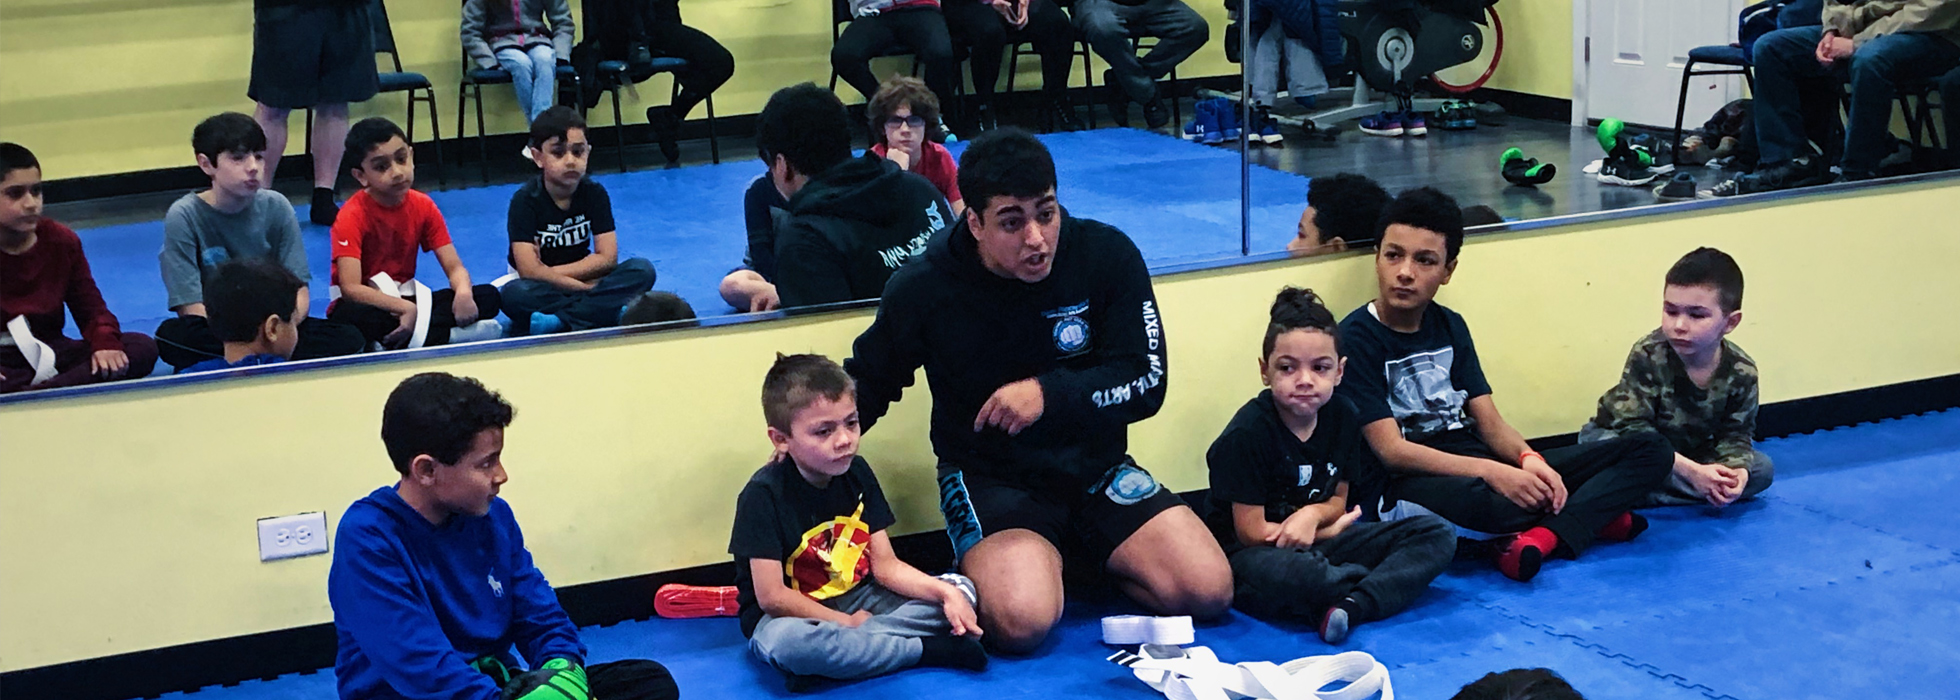 Mixed Martial Arts in Oswego IL, Kids Karate in Oswego IL, Taekwondo in Oswego IL, Jiu-Jitsu in Oswego IL